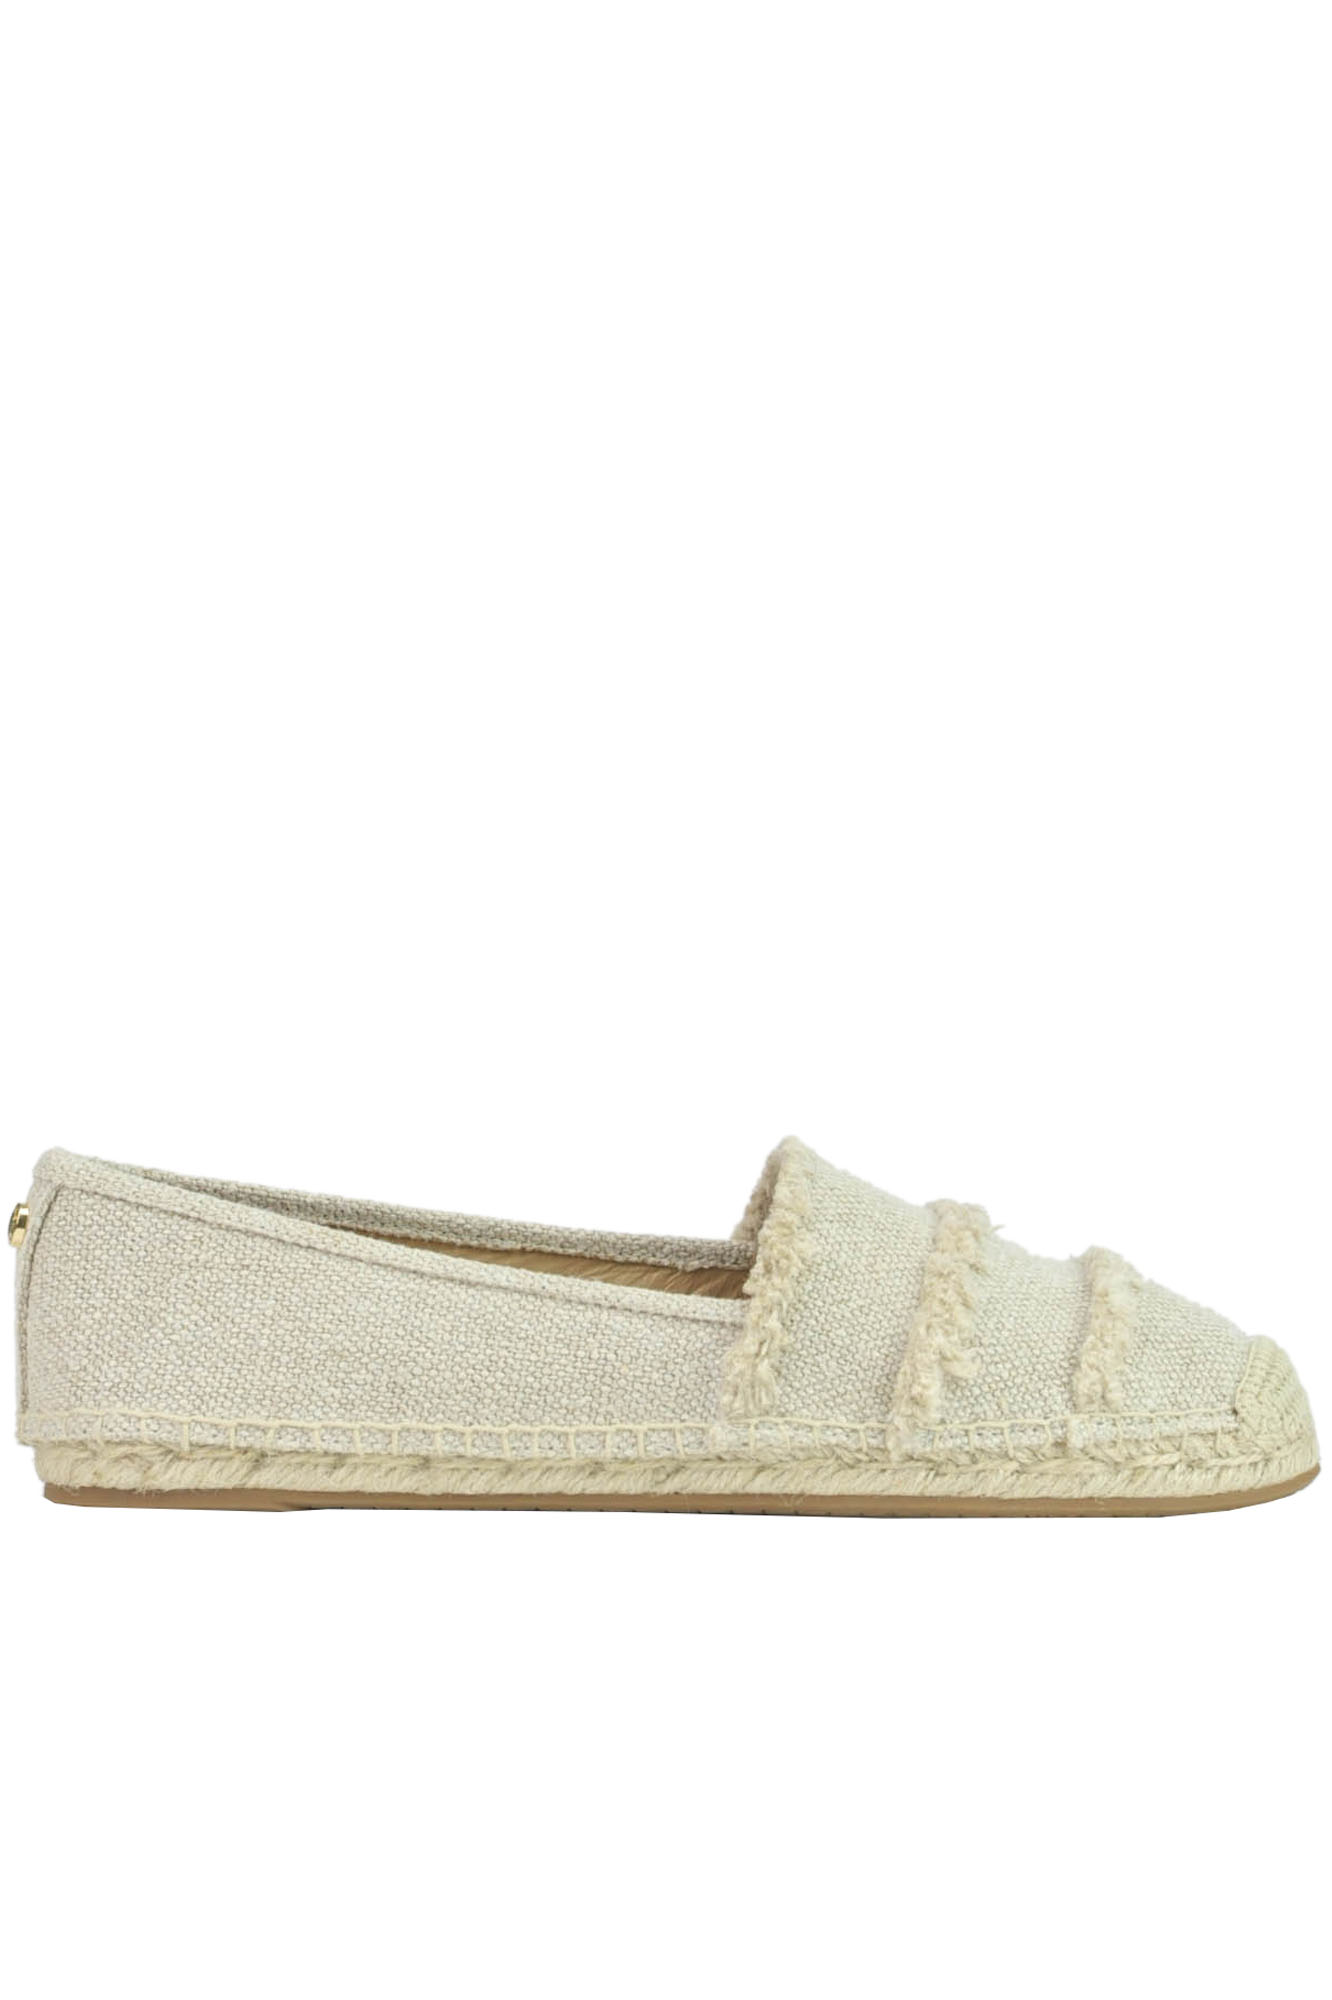 Image of Espadrillas Tibby in canvas